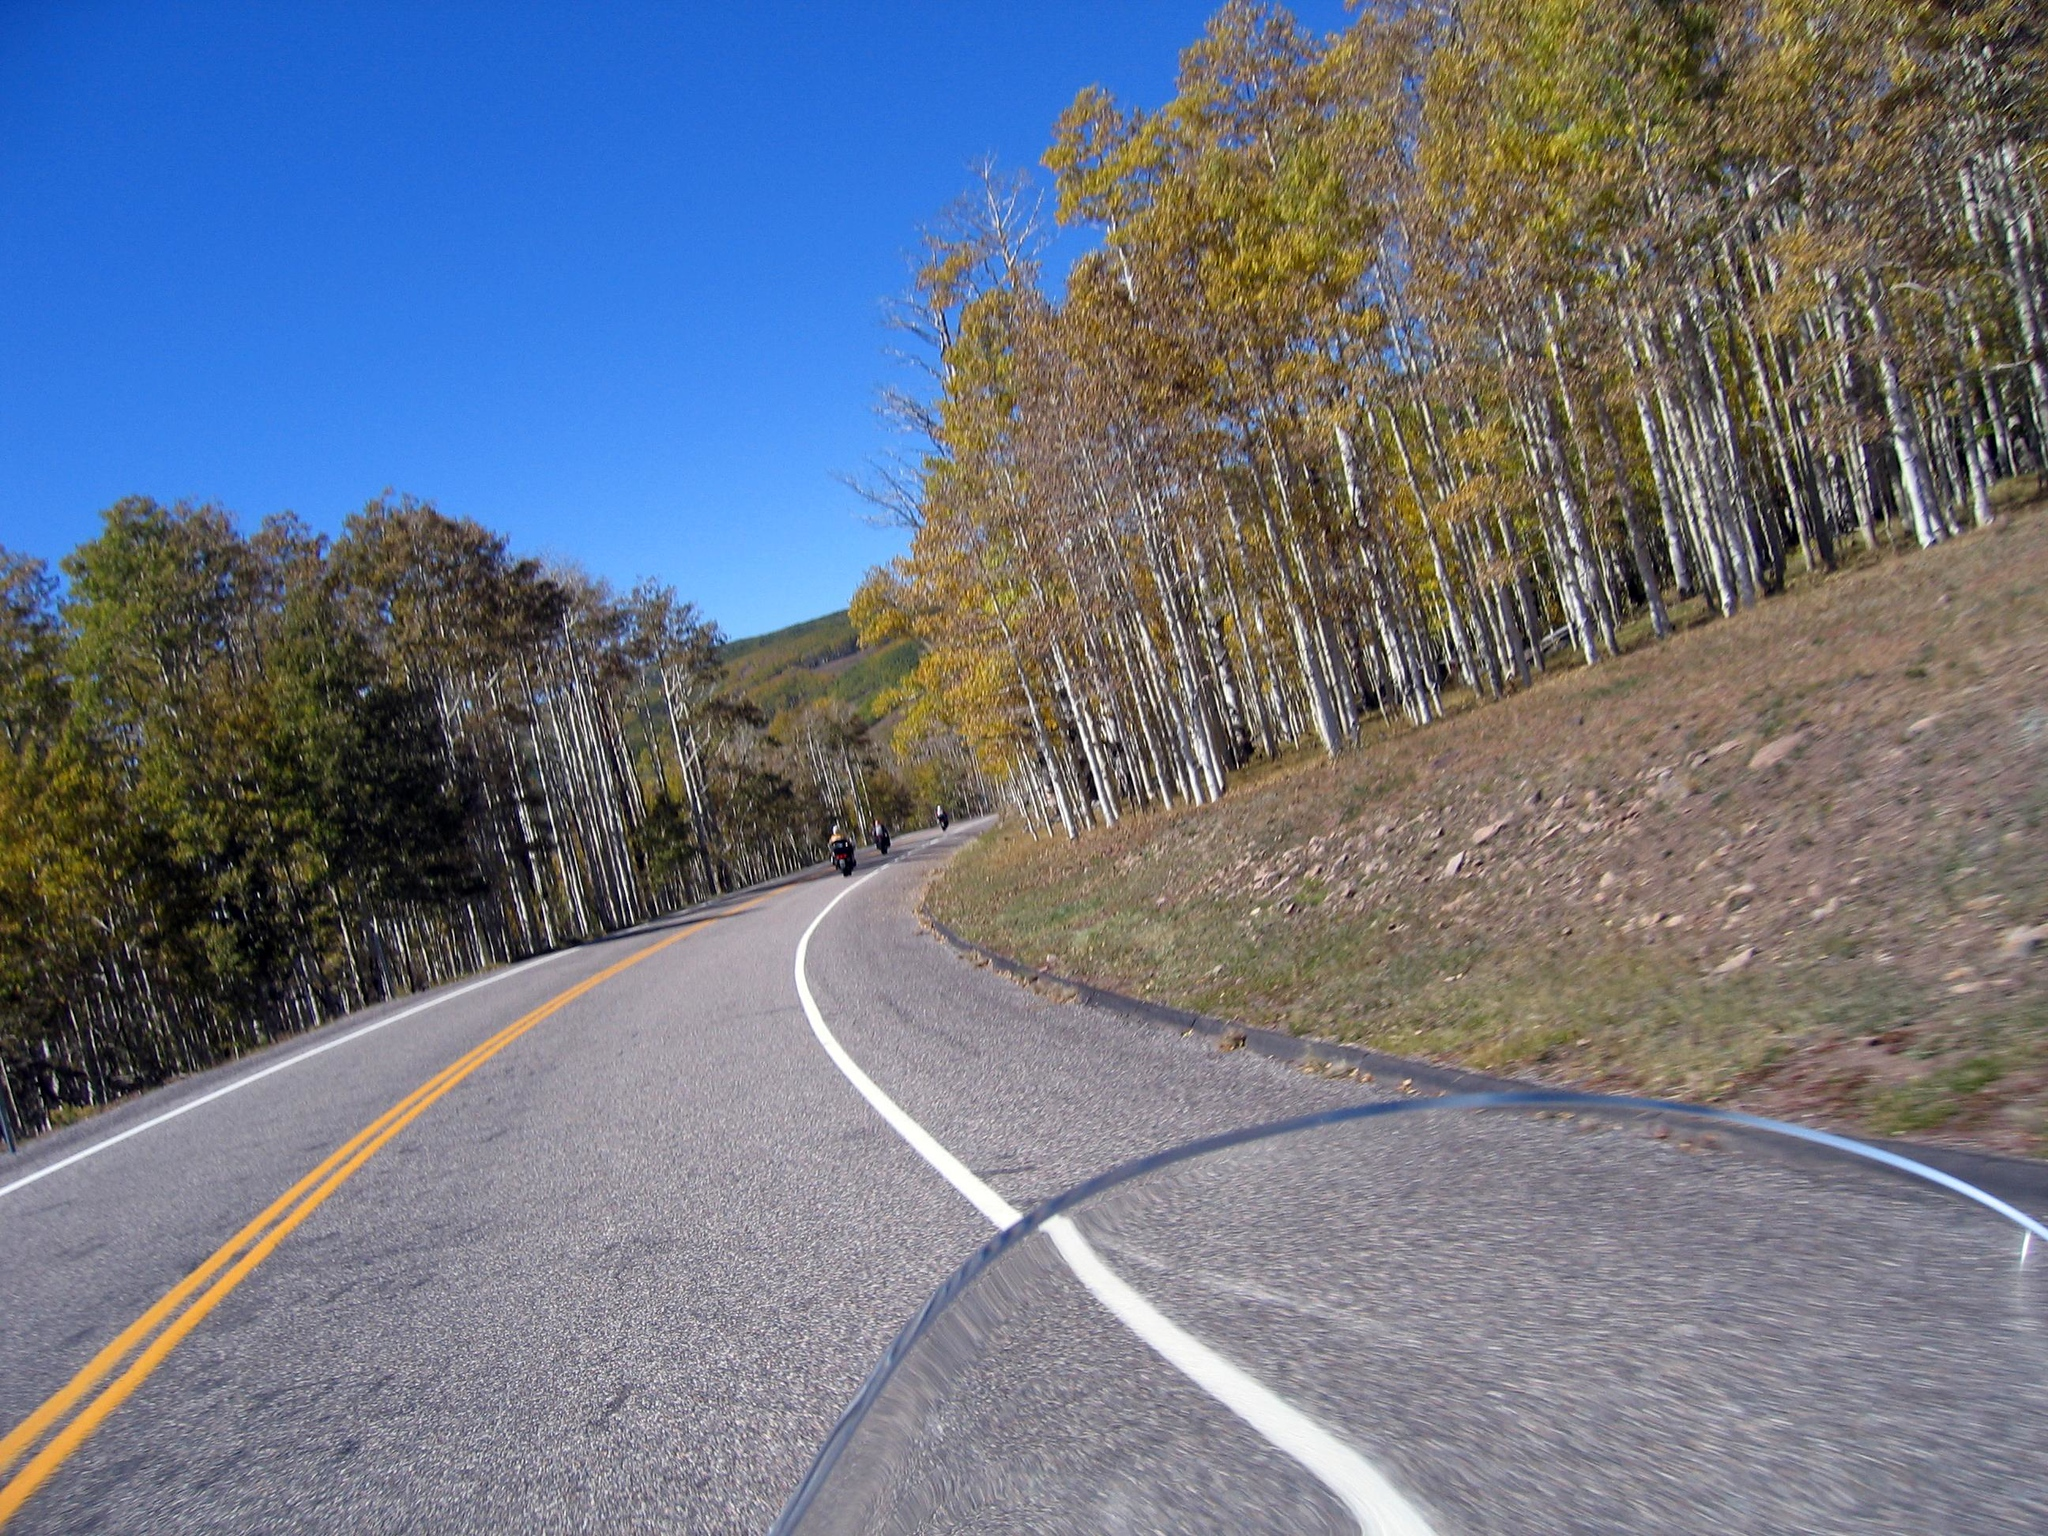 Later Sunday a group of us headed back over the pass to Boulder so that we could ride the Burr Trail.